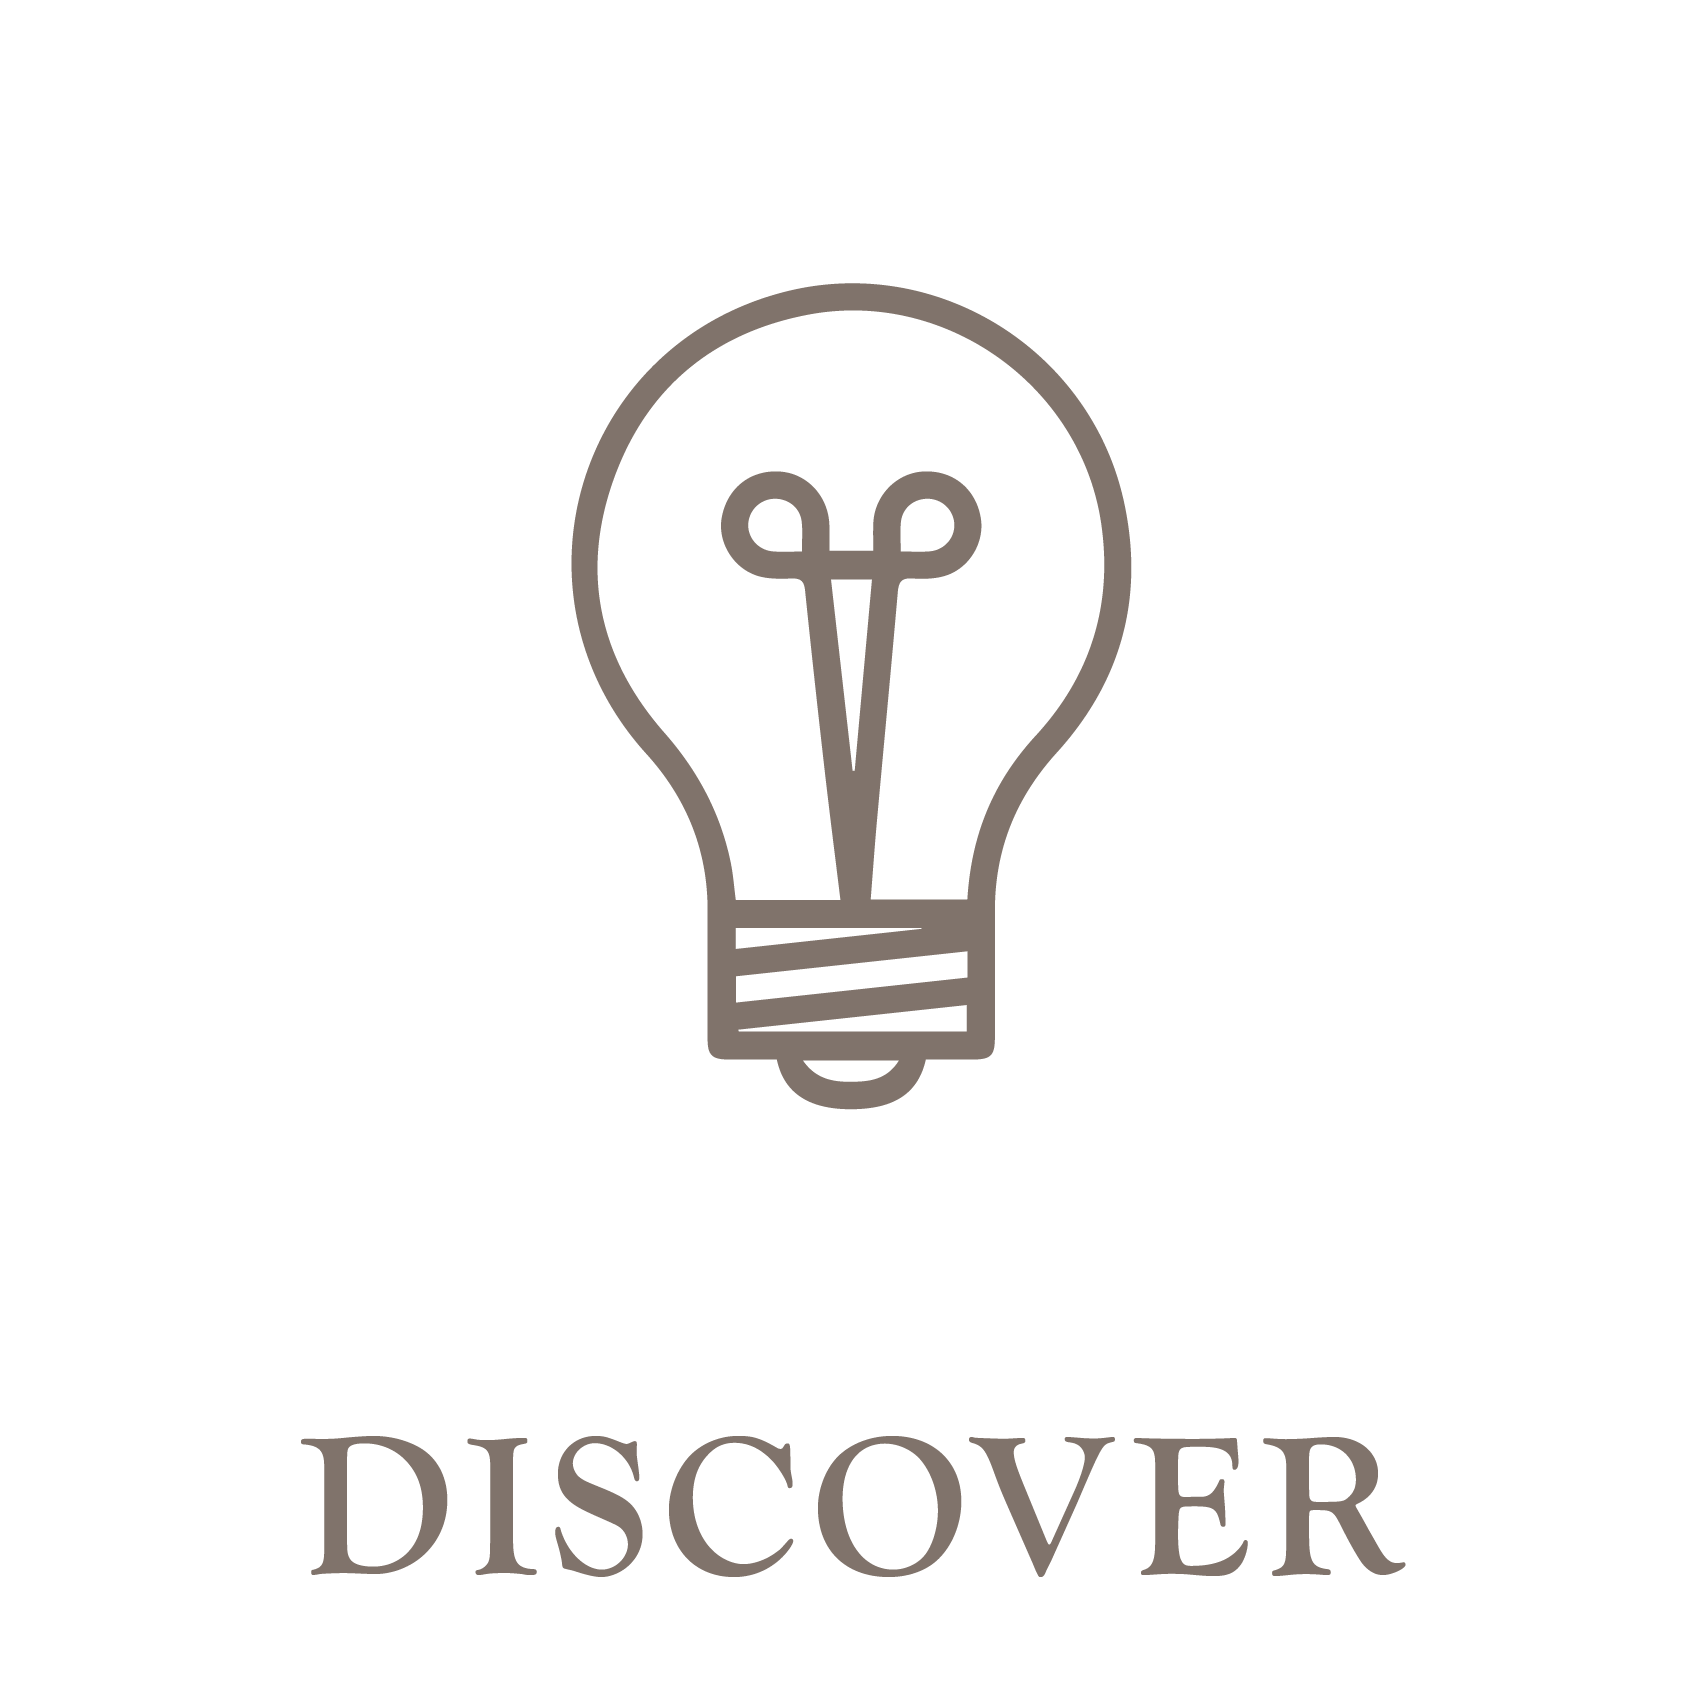 DISCOVER-11.png